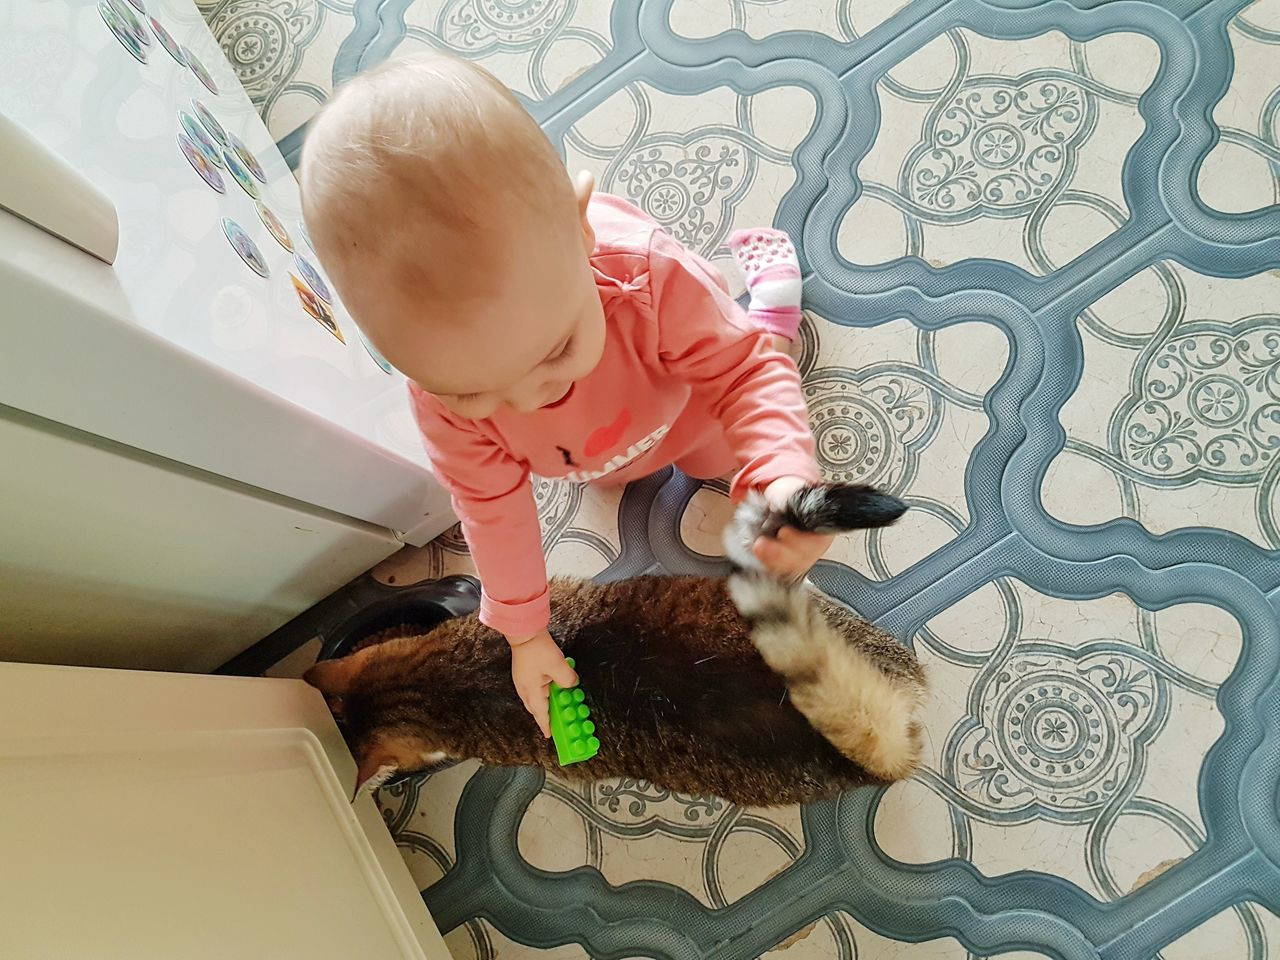 Baby Playing Childhood Indoors  Cat Exploring Baby&kidsphotography Baby Love  Baby Animals Nicecat Day Real People PhonePhotography Having Fun Animal Themes Toddler  Pet Portraits EyeEmNewHere Neon Life Domestic Life Kitchen Life Baby And Cat Cat Tail Kids Man And Pet Be. Ready.